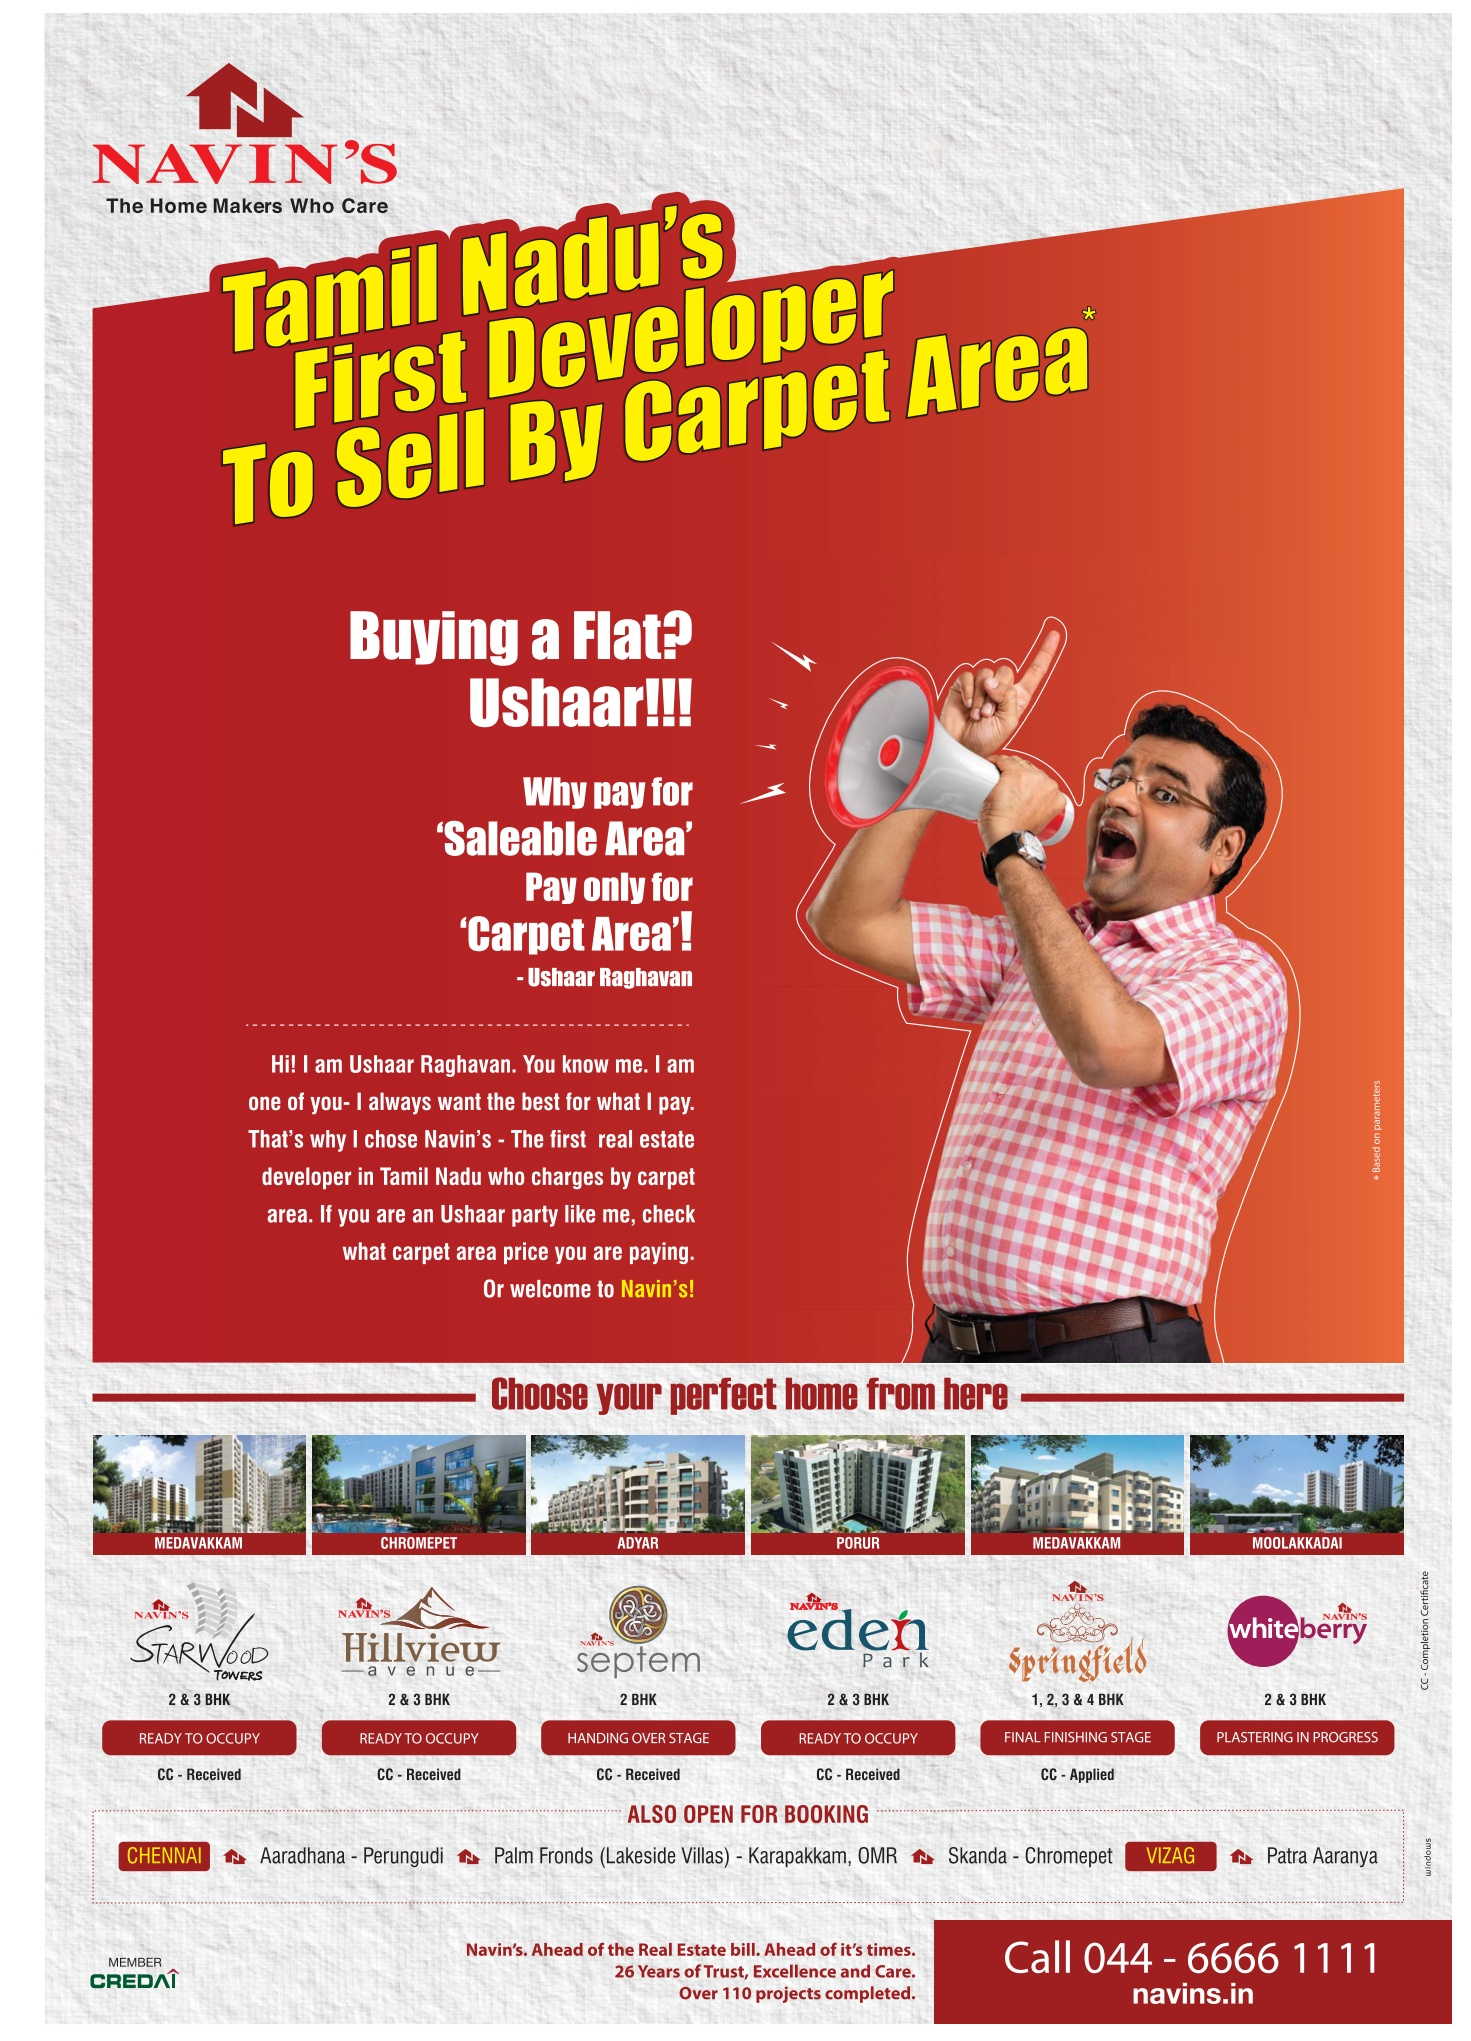 Chennaipatrika  »  News  »  Press Release Navin's introduces Carpet Area Selling for all its projects.